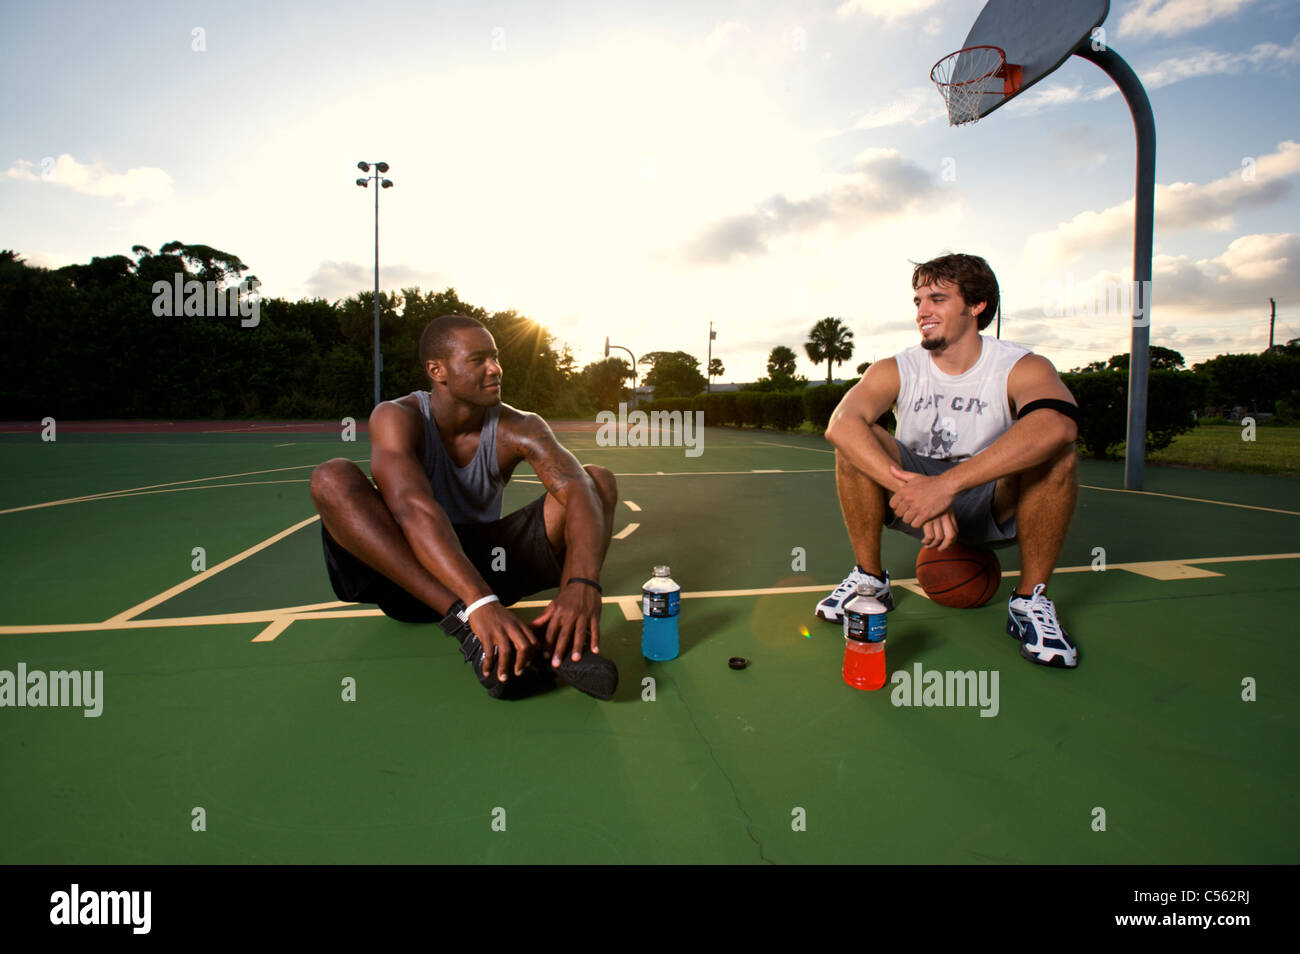 males resting, relaxing after after playing basketball on outdoor court, dramatic sky - Stock Image